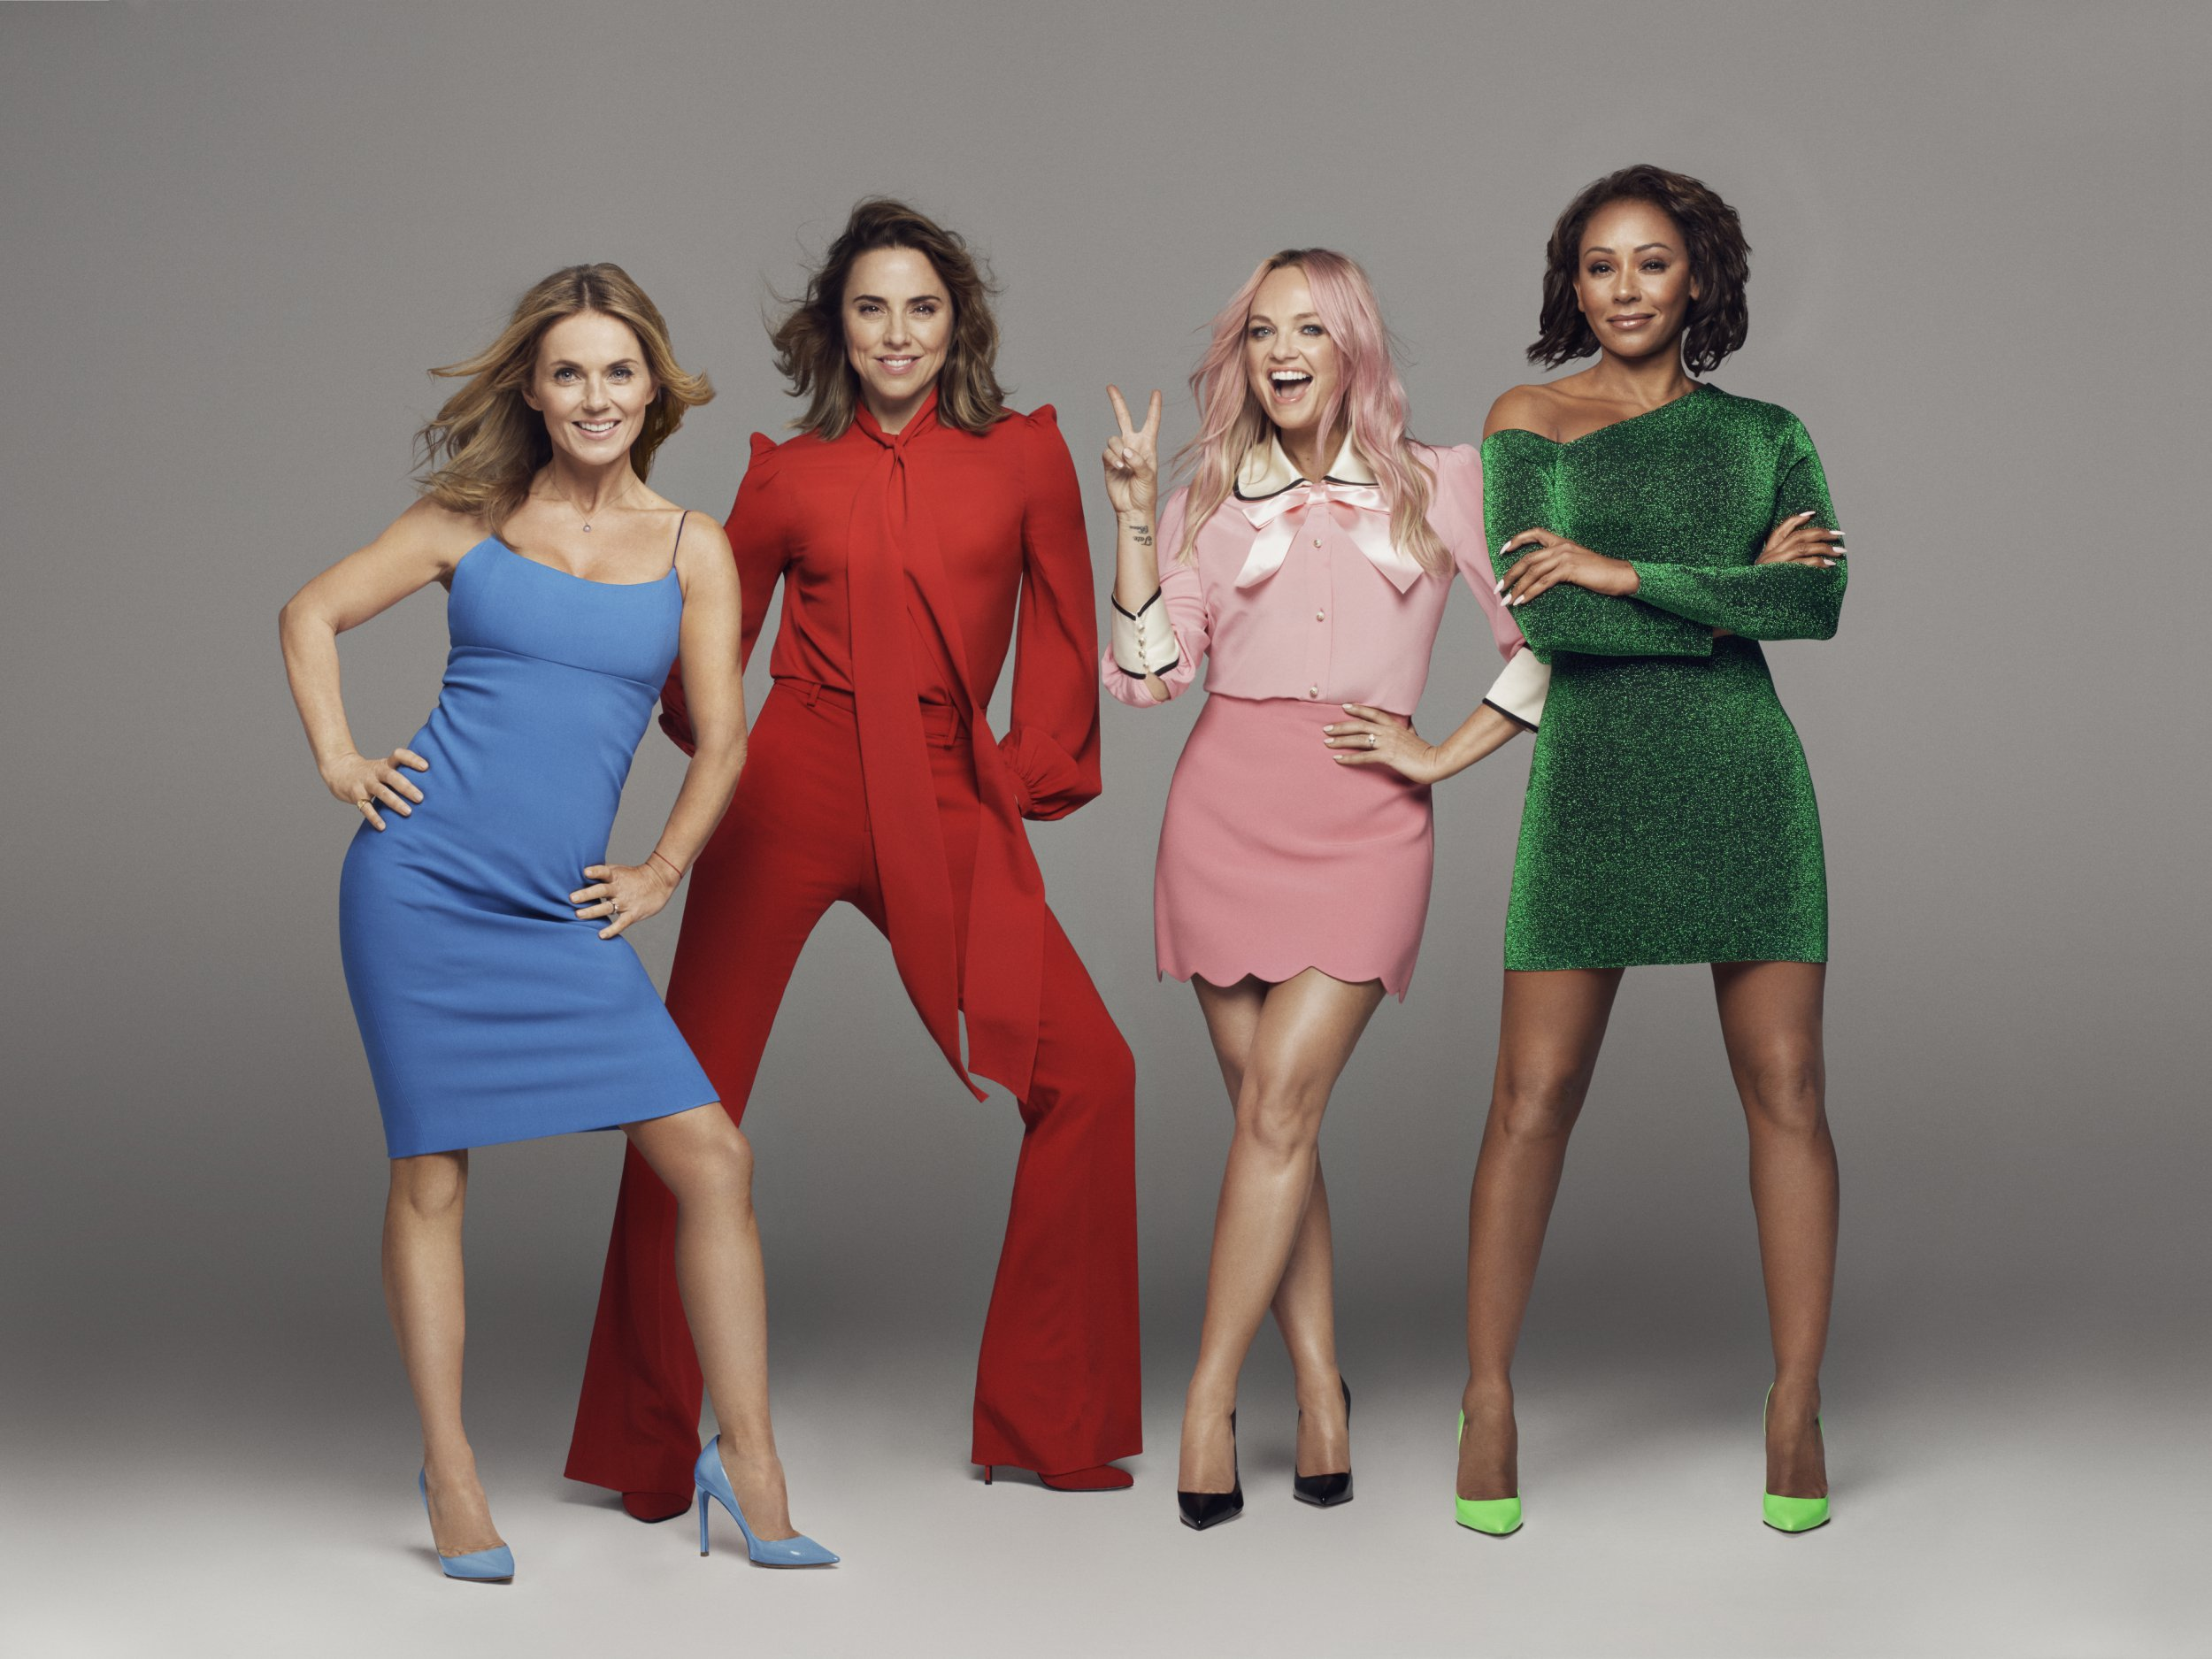 STRICTLY EMBARGOED UNTIL MON 5TH NOV - 3.15PM GMT Colours of the world...every boy and every girl...people of the world...AHHHH! SPICE GIRLS ANNOUNCE 2019 STADIUM TOUR Tickets on sale on Saturday 10th November